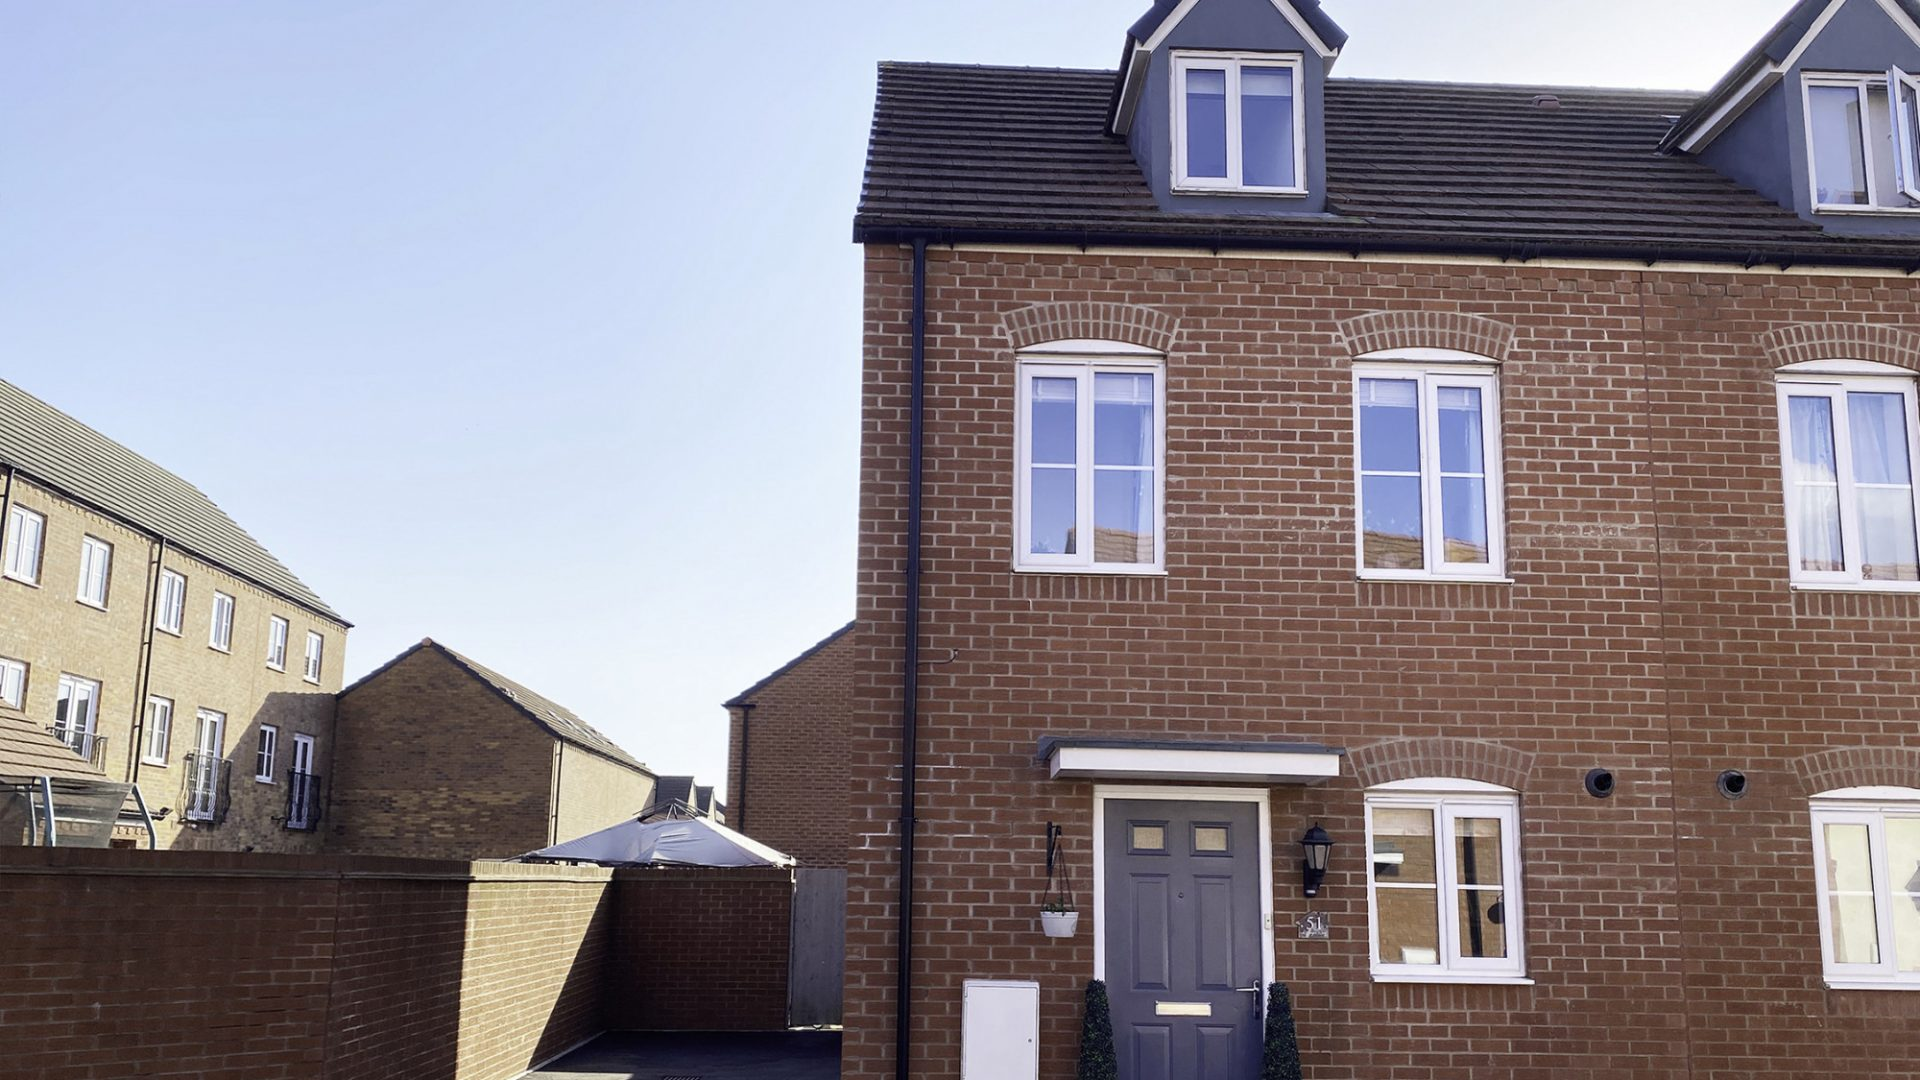 Lysaght Way, Newport for sale with Mr and Mrs Clarke estate agent